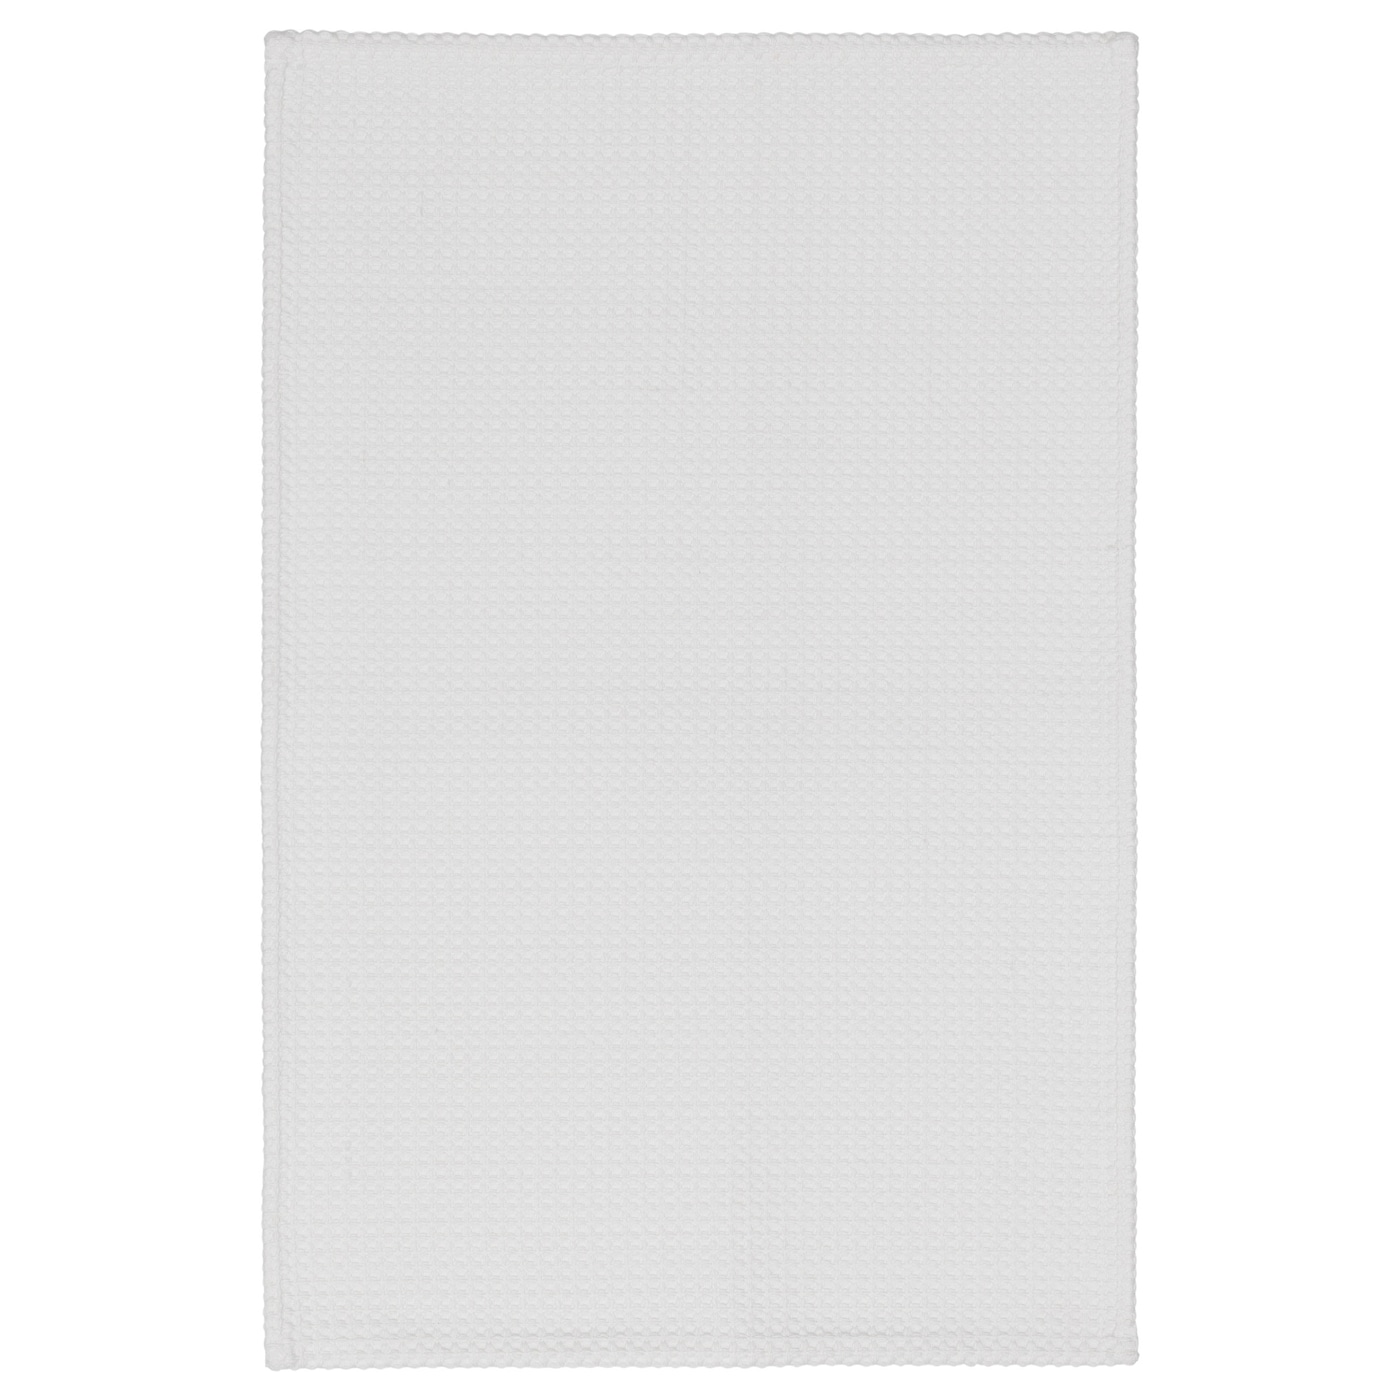 IKEA SUSEÅN bath mat Soft terry bath mat with high absorption capacity (weight 1160 g/m²).